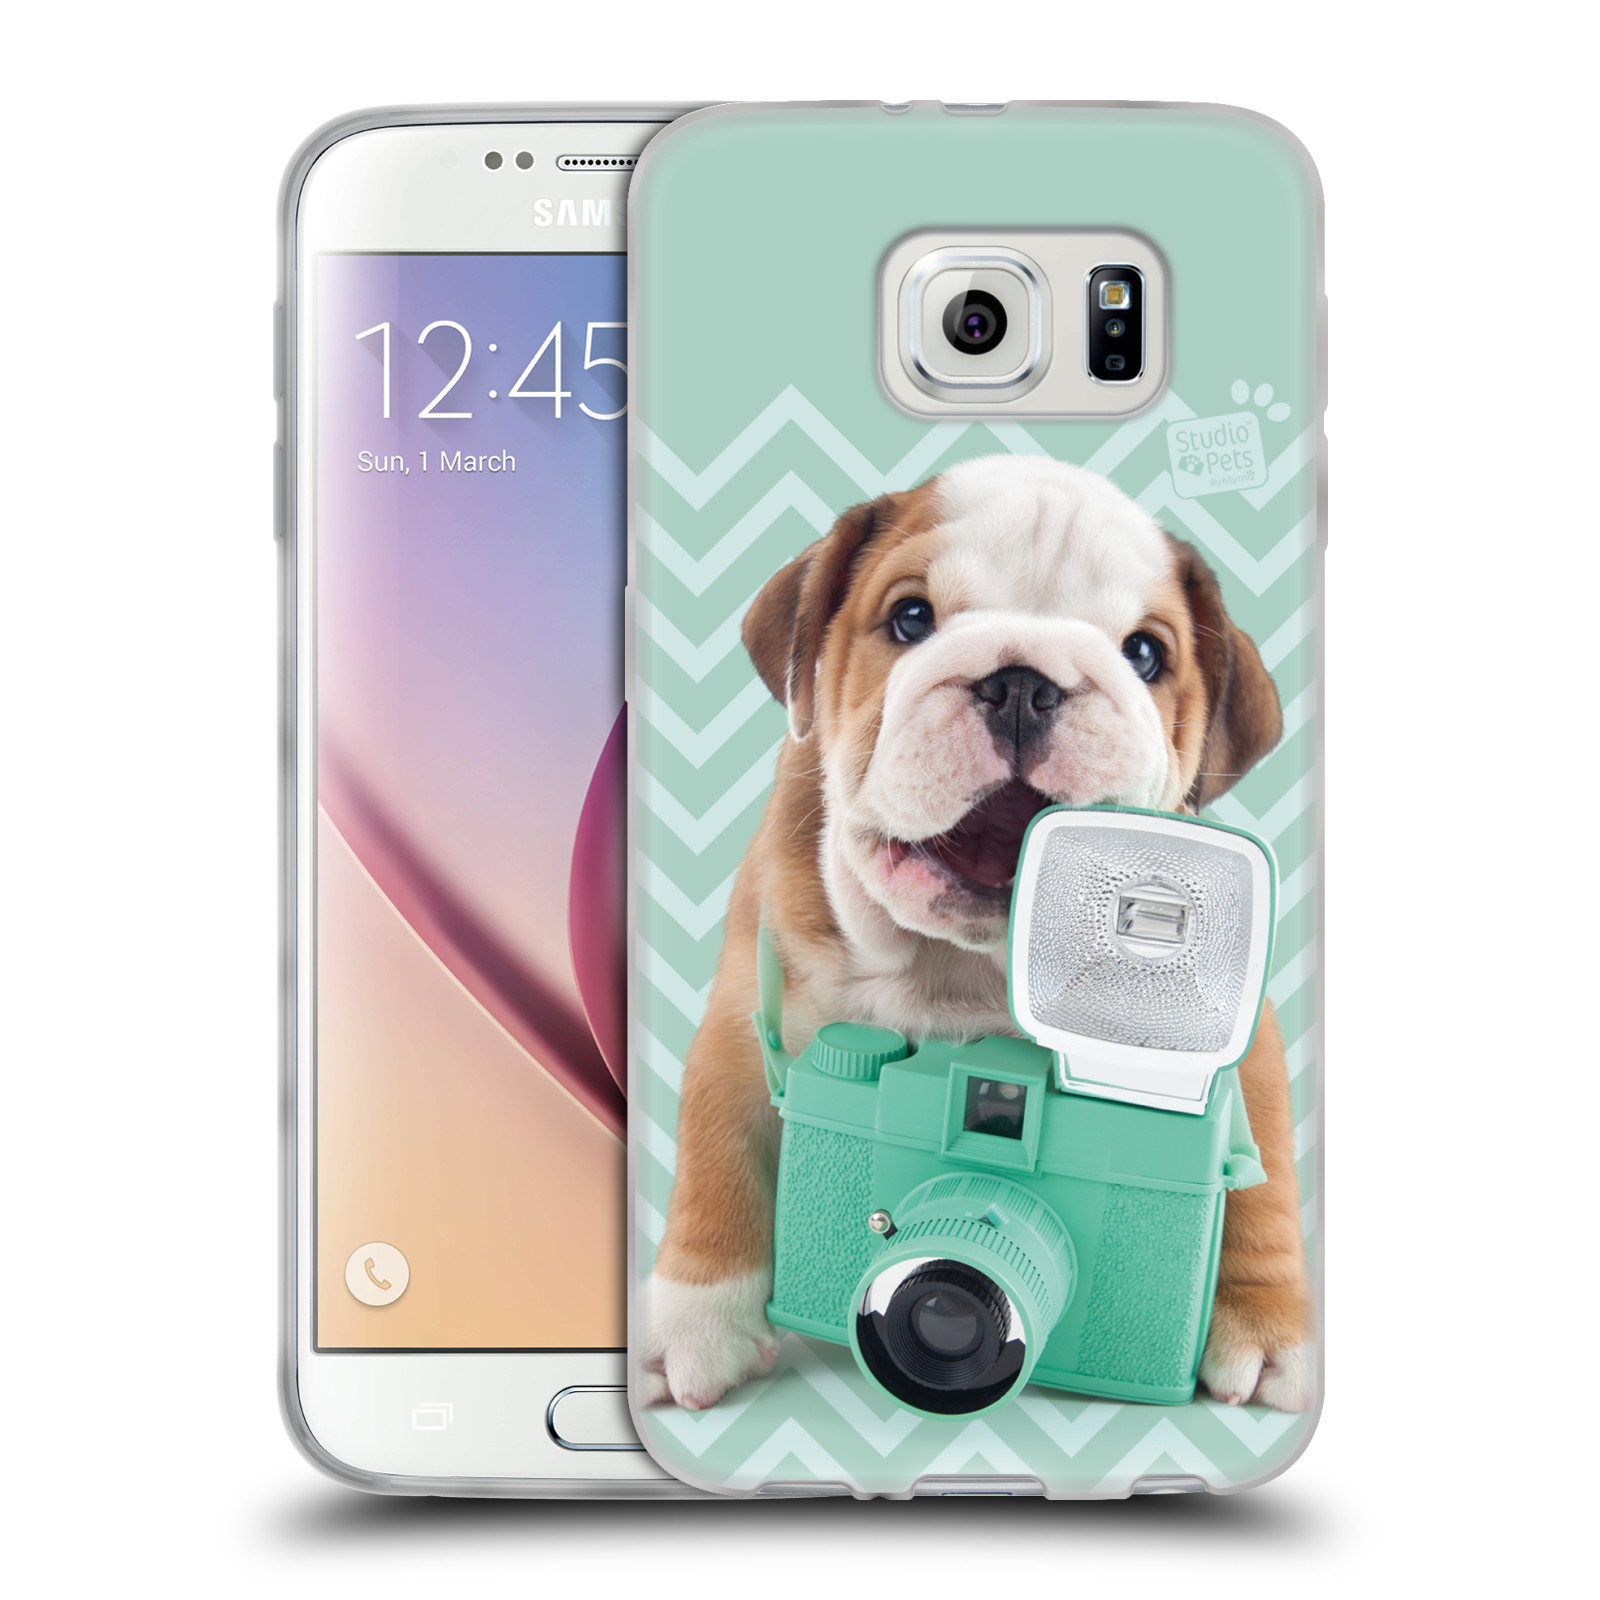 OFFICIAL STUDIO PETS PATTERNS SOFT GEL CASE FOR SAMSUNG PHONES 1